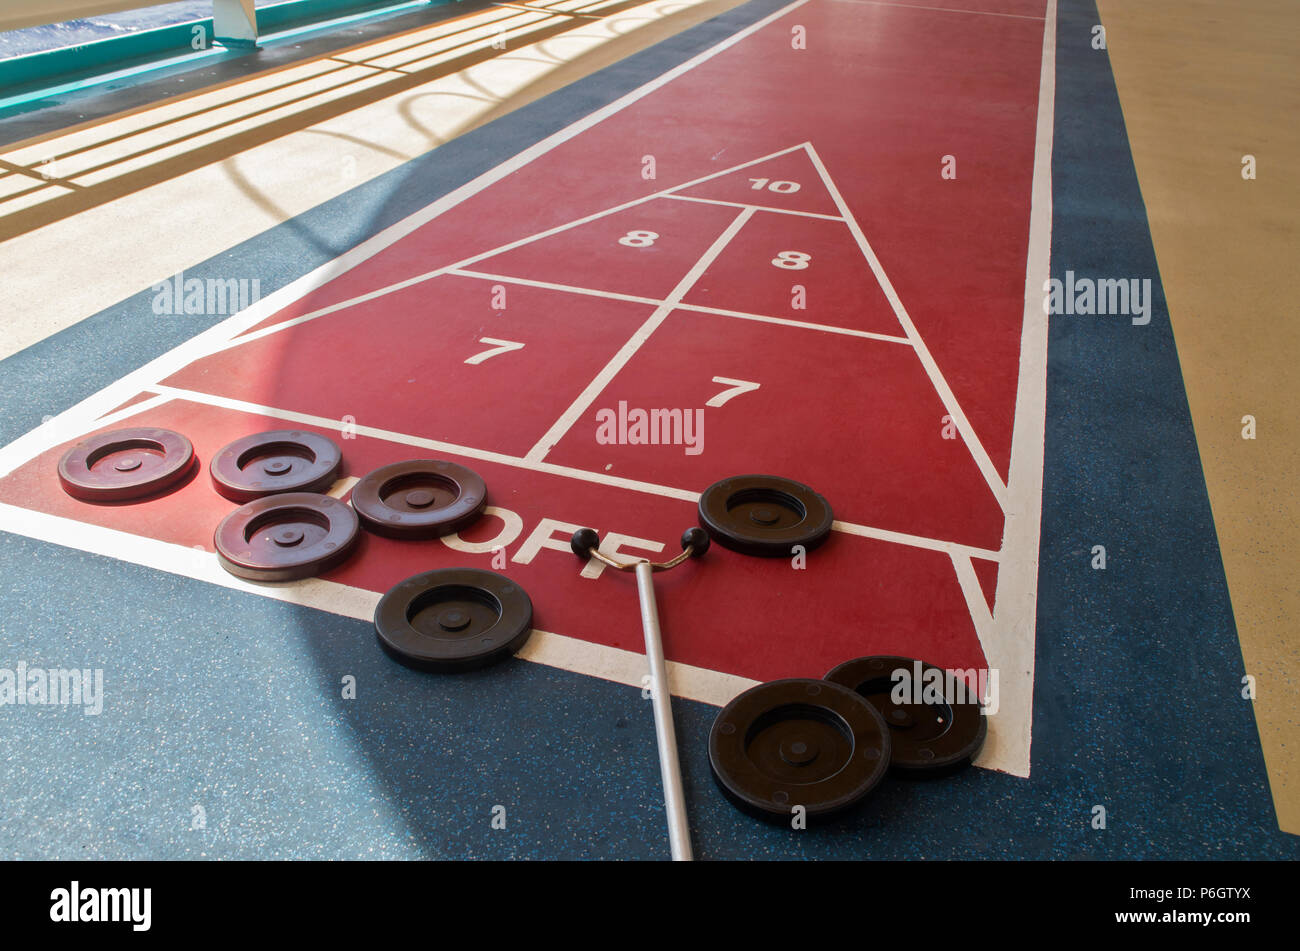 The shuffleboard game is ready to play on a cruise ship in the Caribean Sea - Stock Image